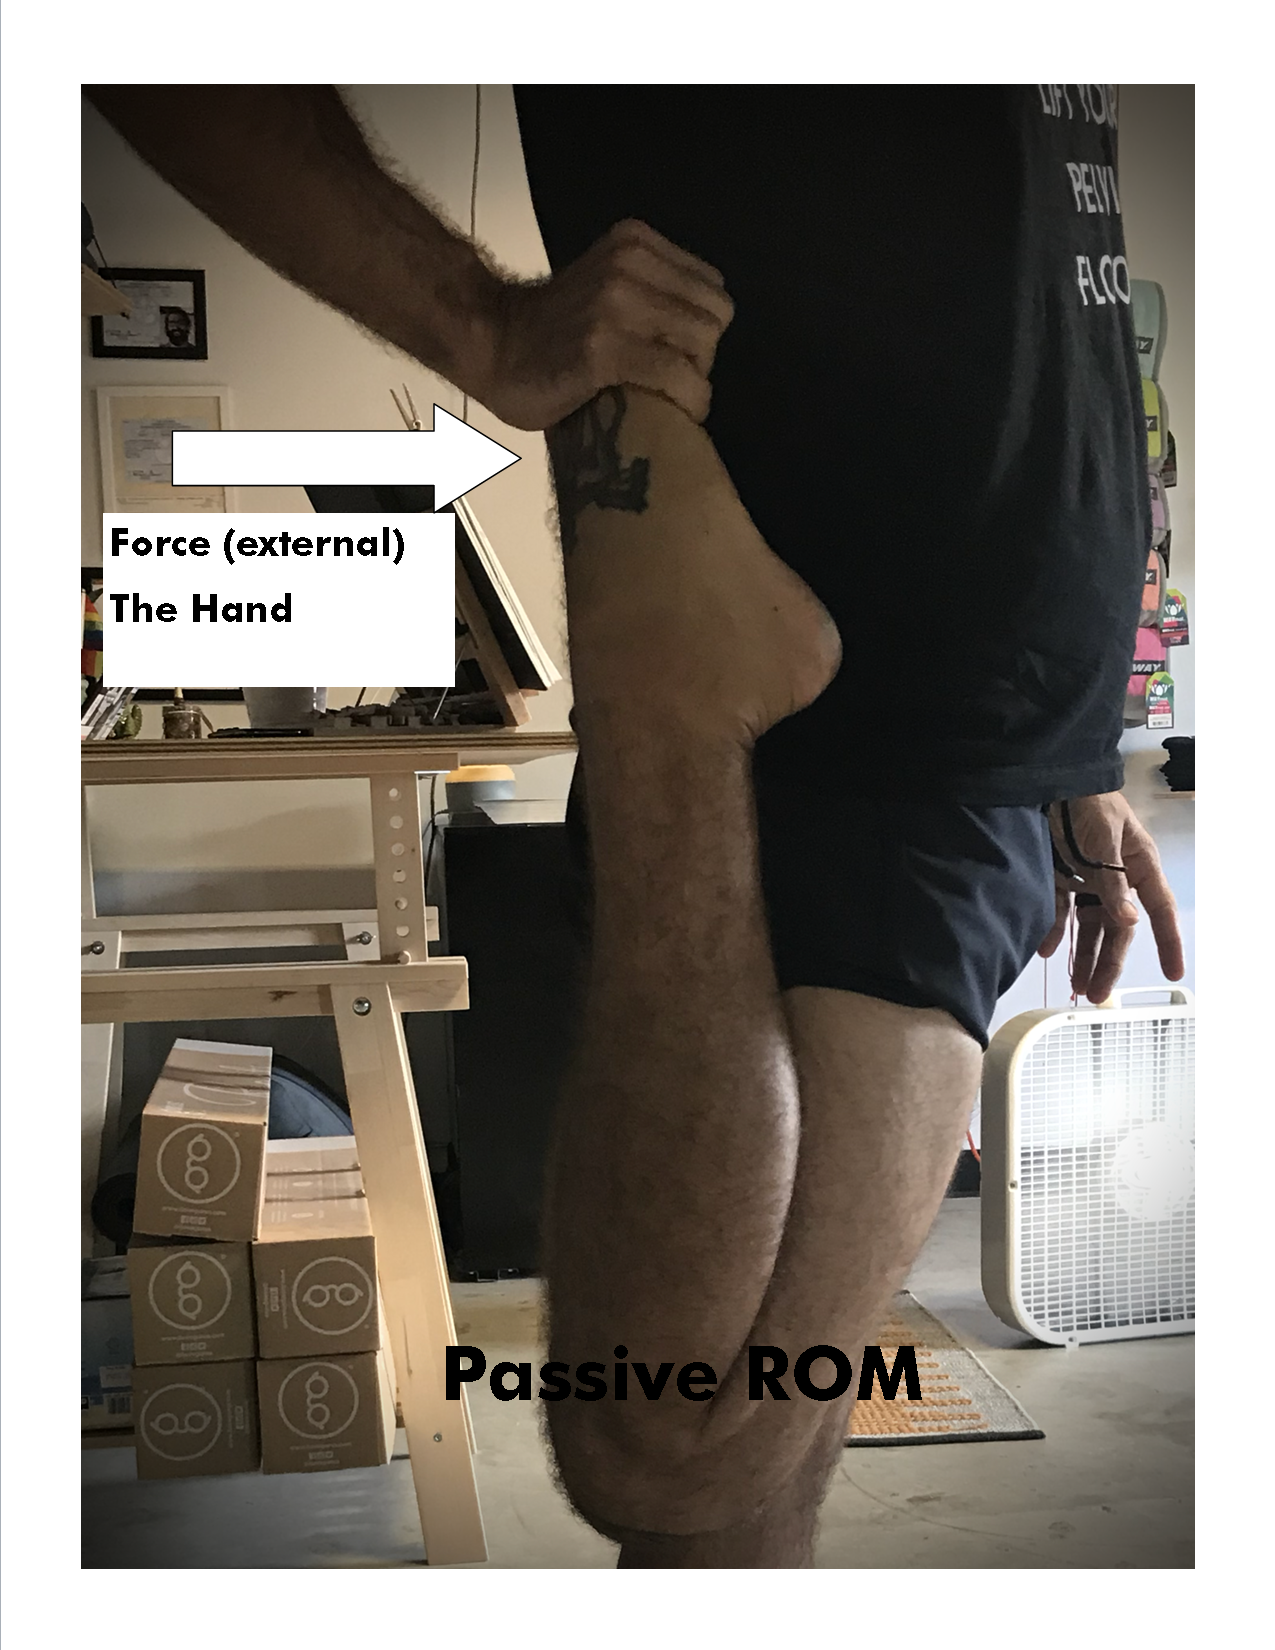 Passive ROM gaze hot yoga